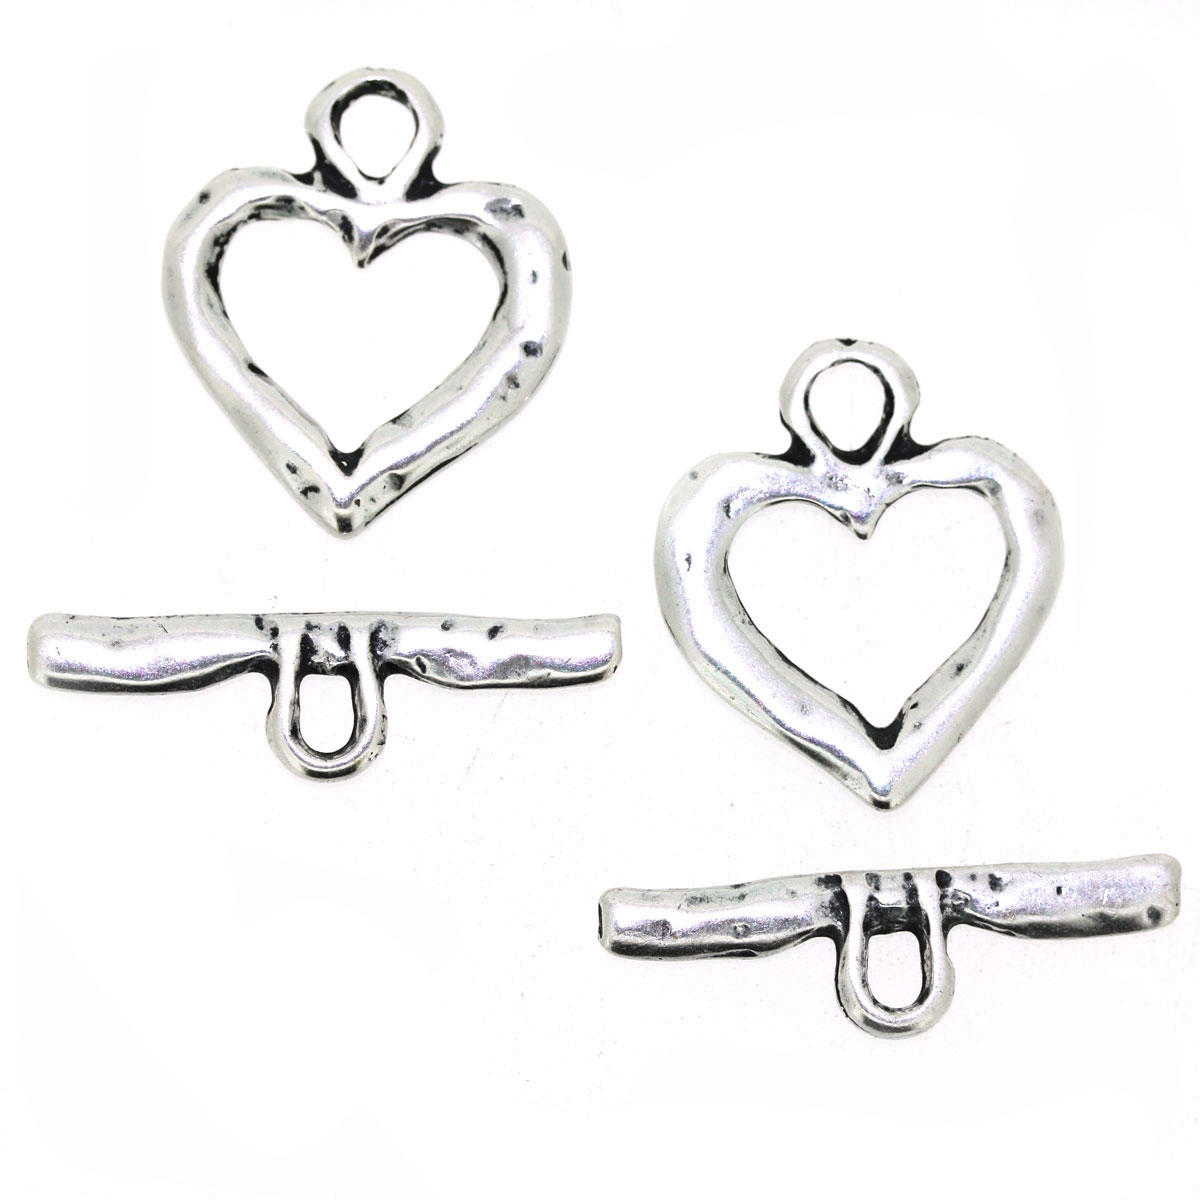 Antique Silver Heart Toggle Jewellery Component 2